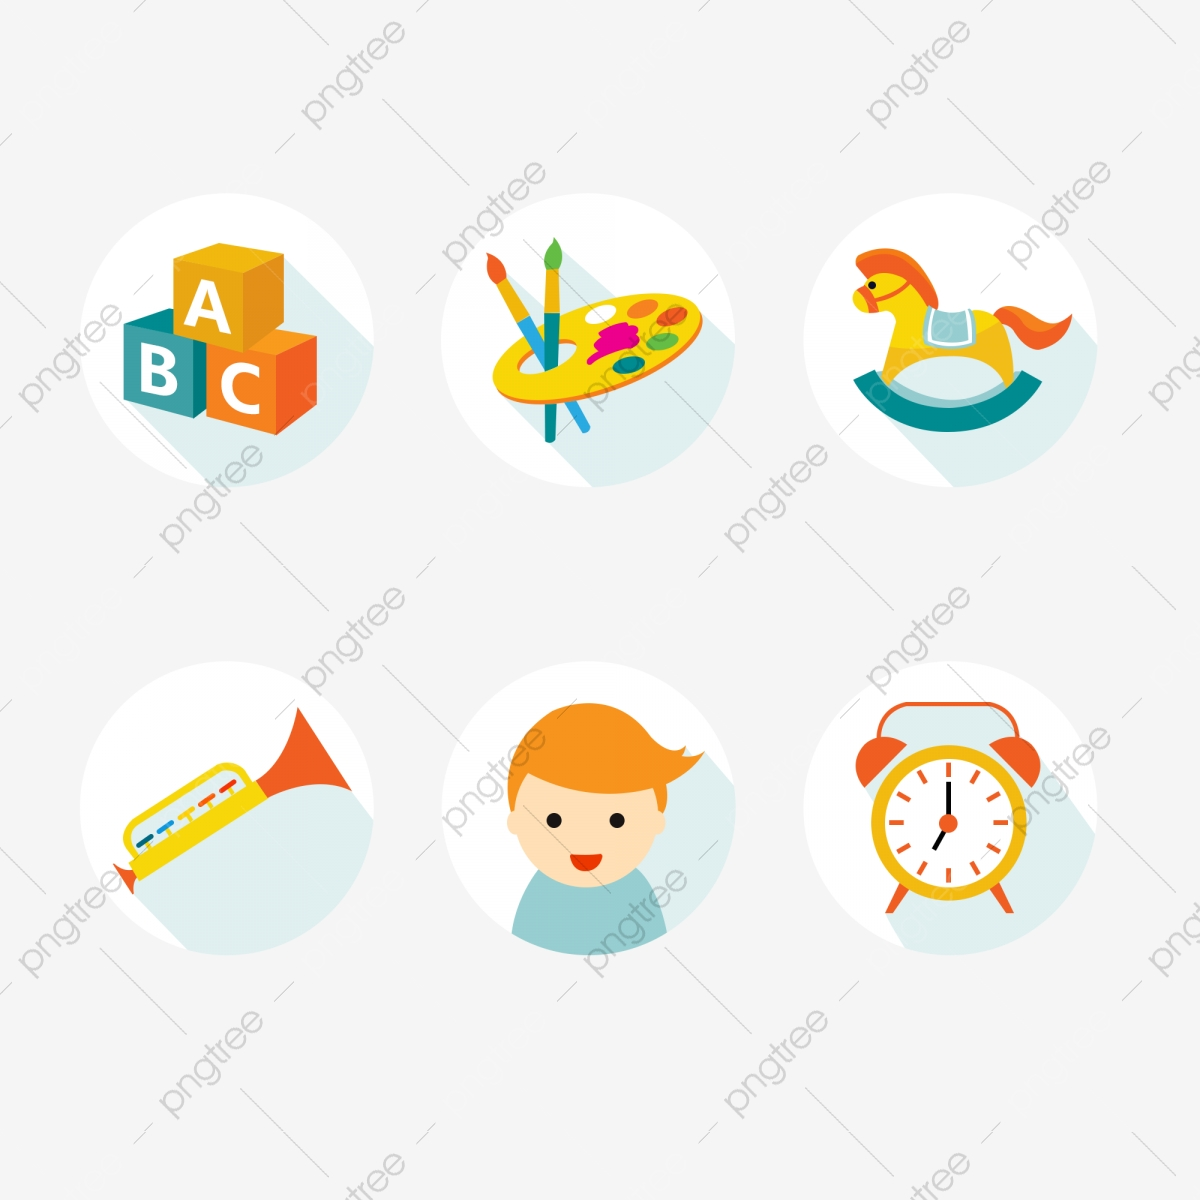 Agreement clipart clipart images gallery for free download.